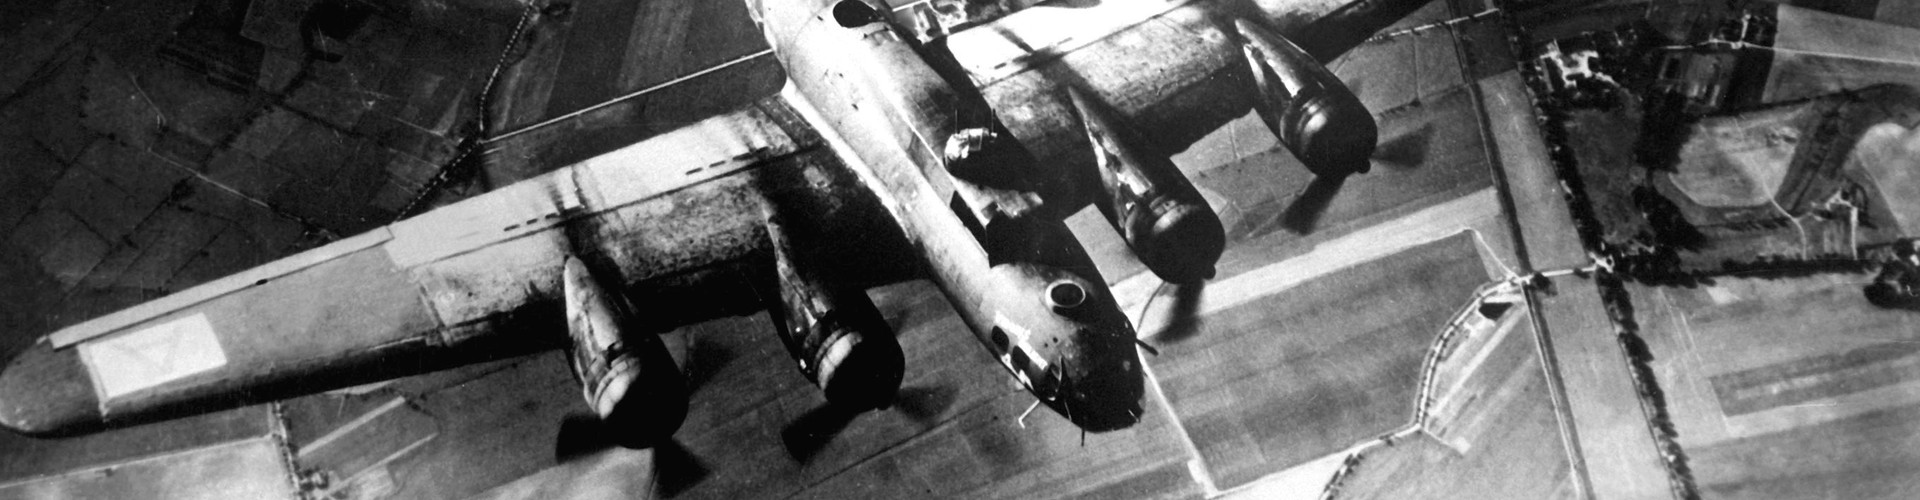 Bombing of a factory at Marienburg, Germany, on 9 October 1943